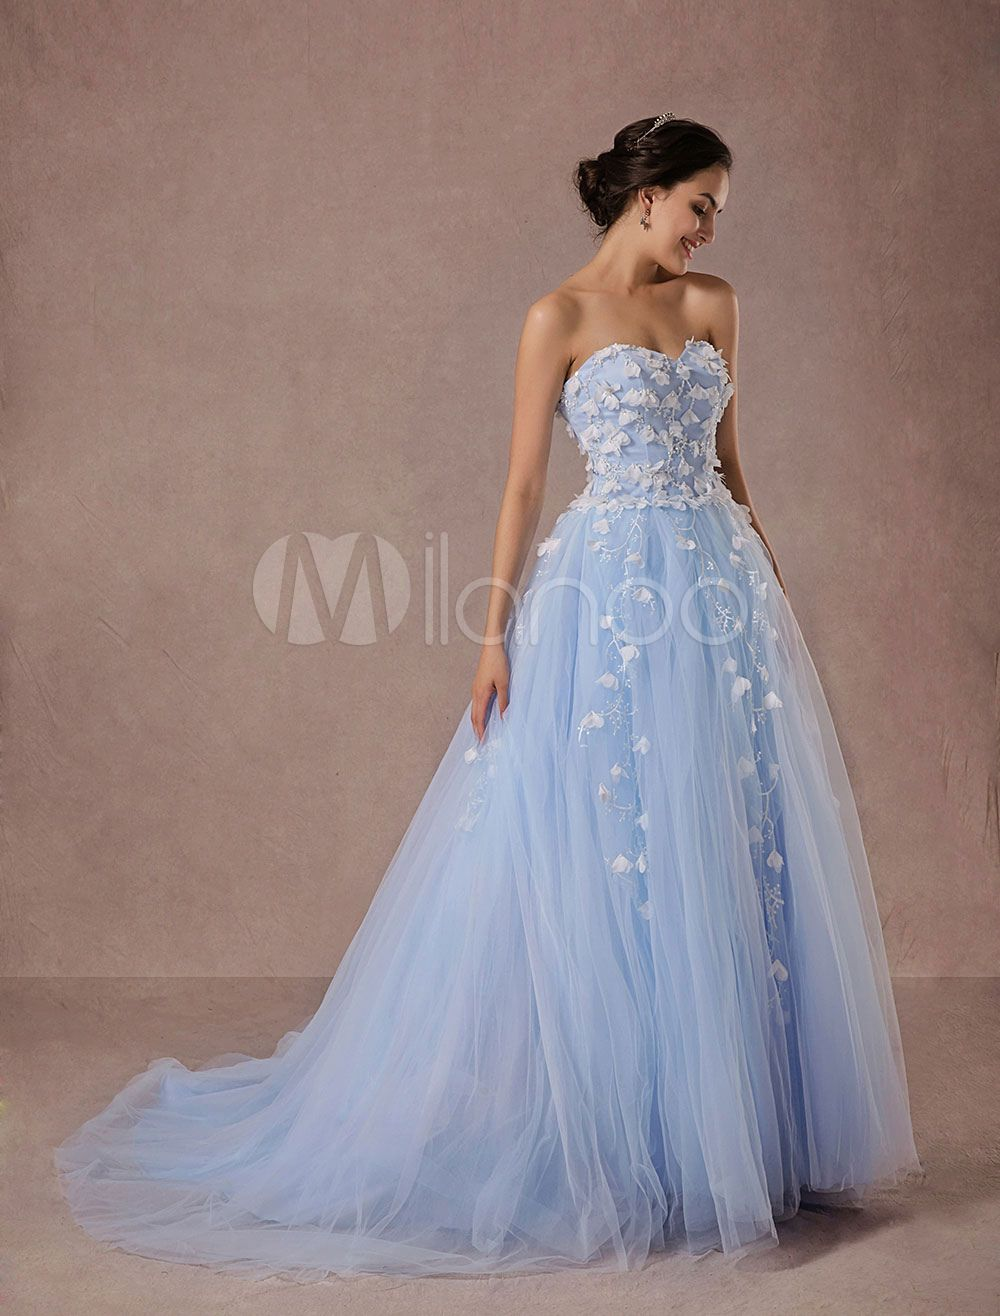 Blue wedding dress lace tulle chapel train bridal gown sweetheart